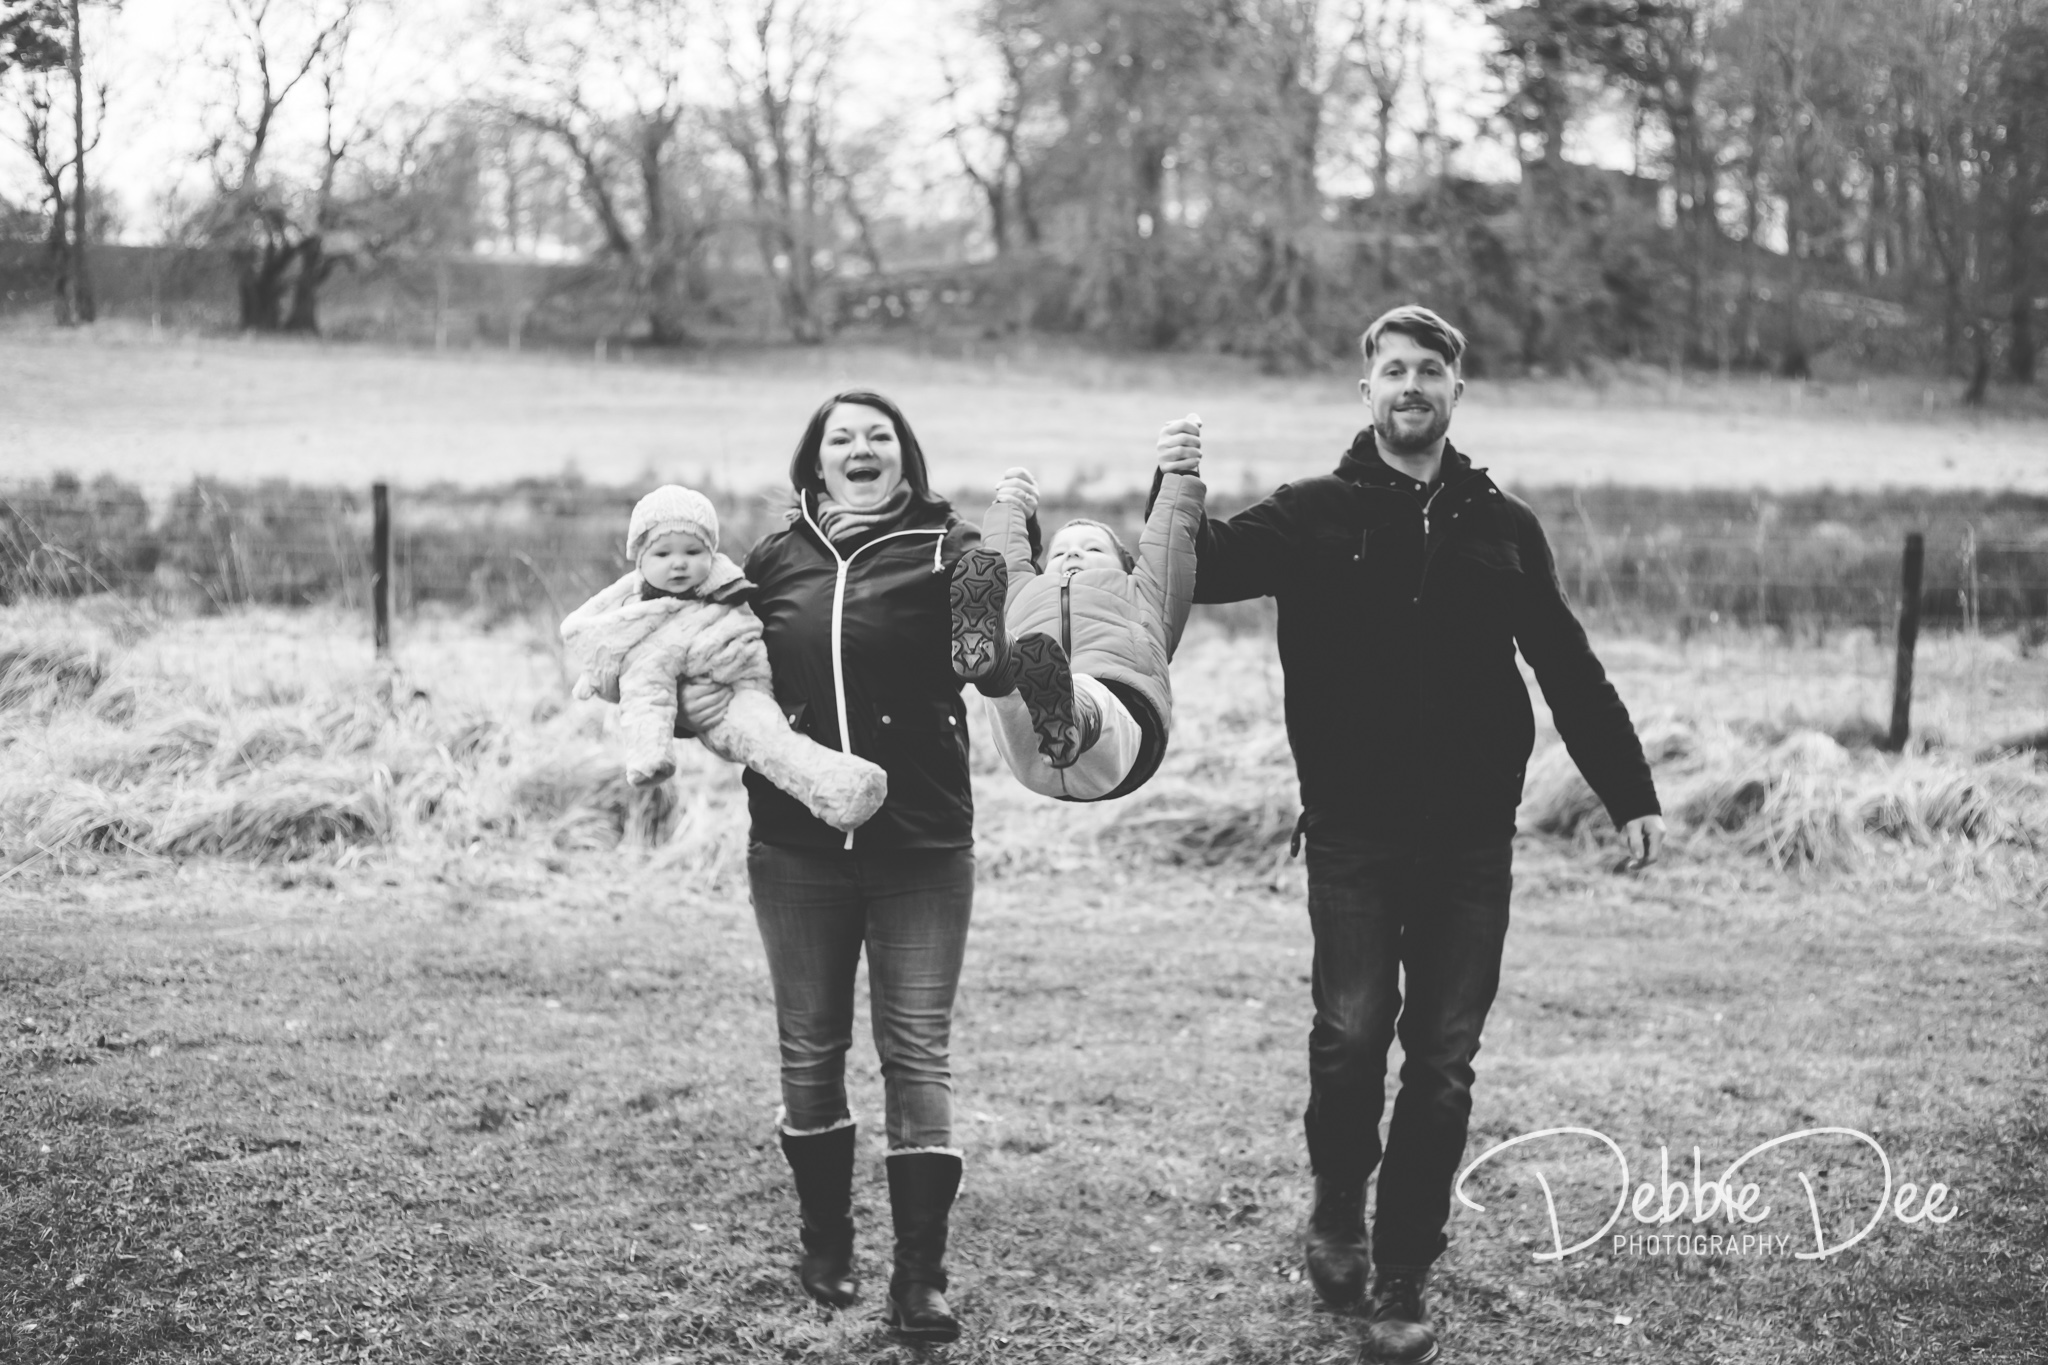 Family Photography Aberdeenshire - Leith Hall Aberdeenshire - Debbie Dee Photography - Outdoor Family Photography Session - family swinging child